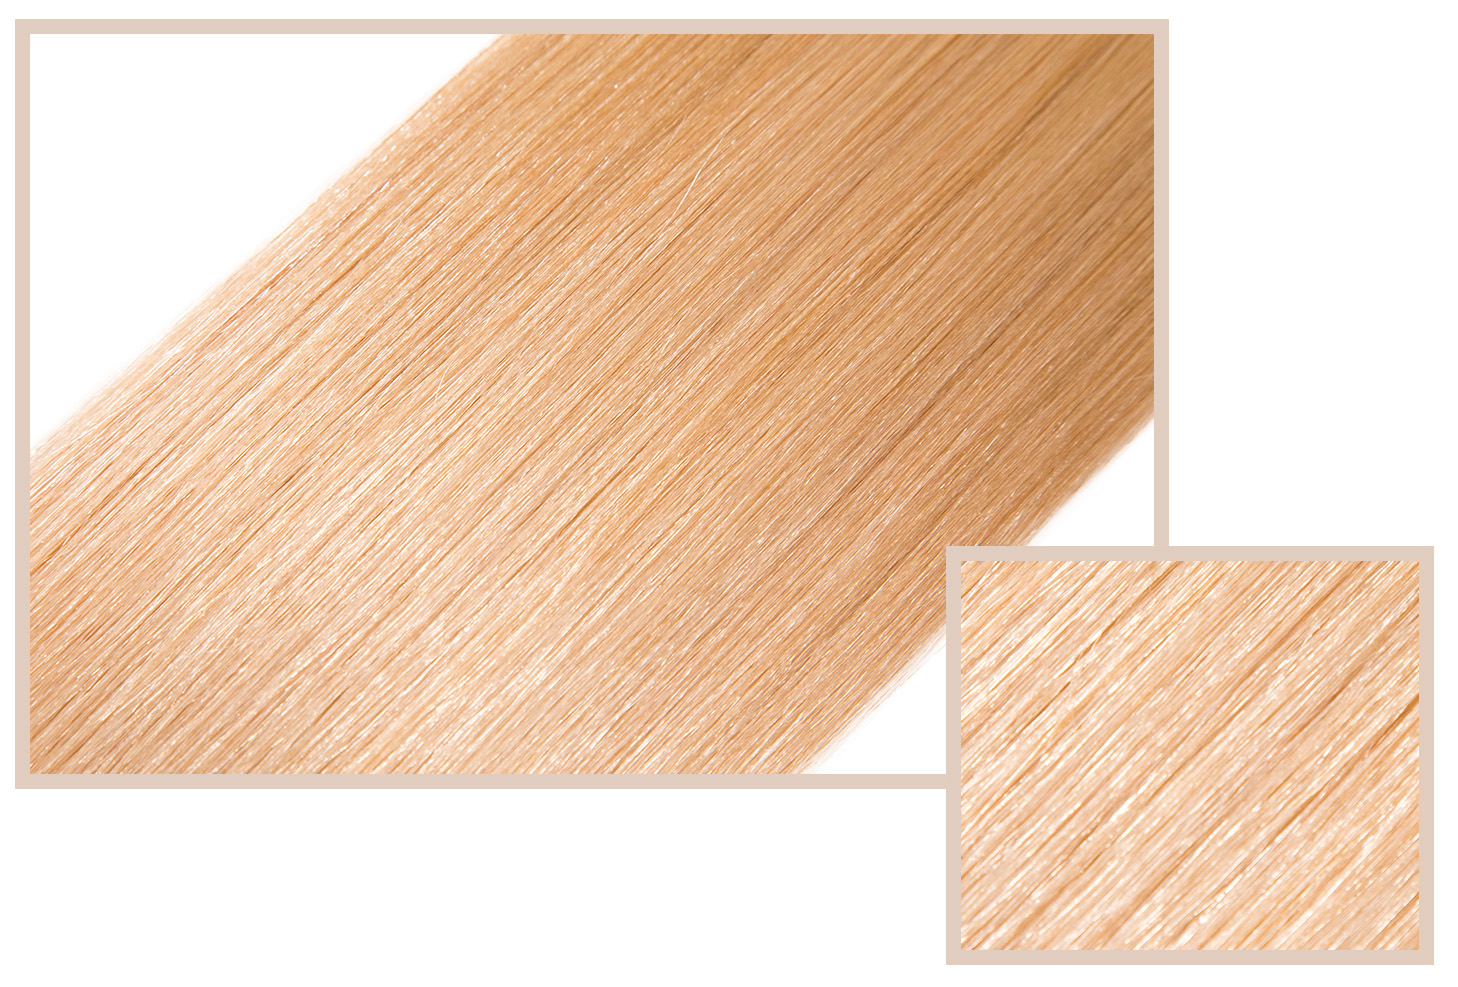 YAKI STRAIGHT - Available in Classic CollectionFine, smooth texture that is slightly coarser than the Silky Straight. This hair emulates the look and feel of naturally relaxed hair. The right amount of texture gives the hair an airy touchable feel and flawless look. Can be curled for long lasting waves or curls, or flat ironed for a more silky appearance.